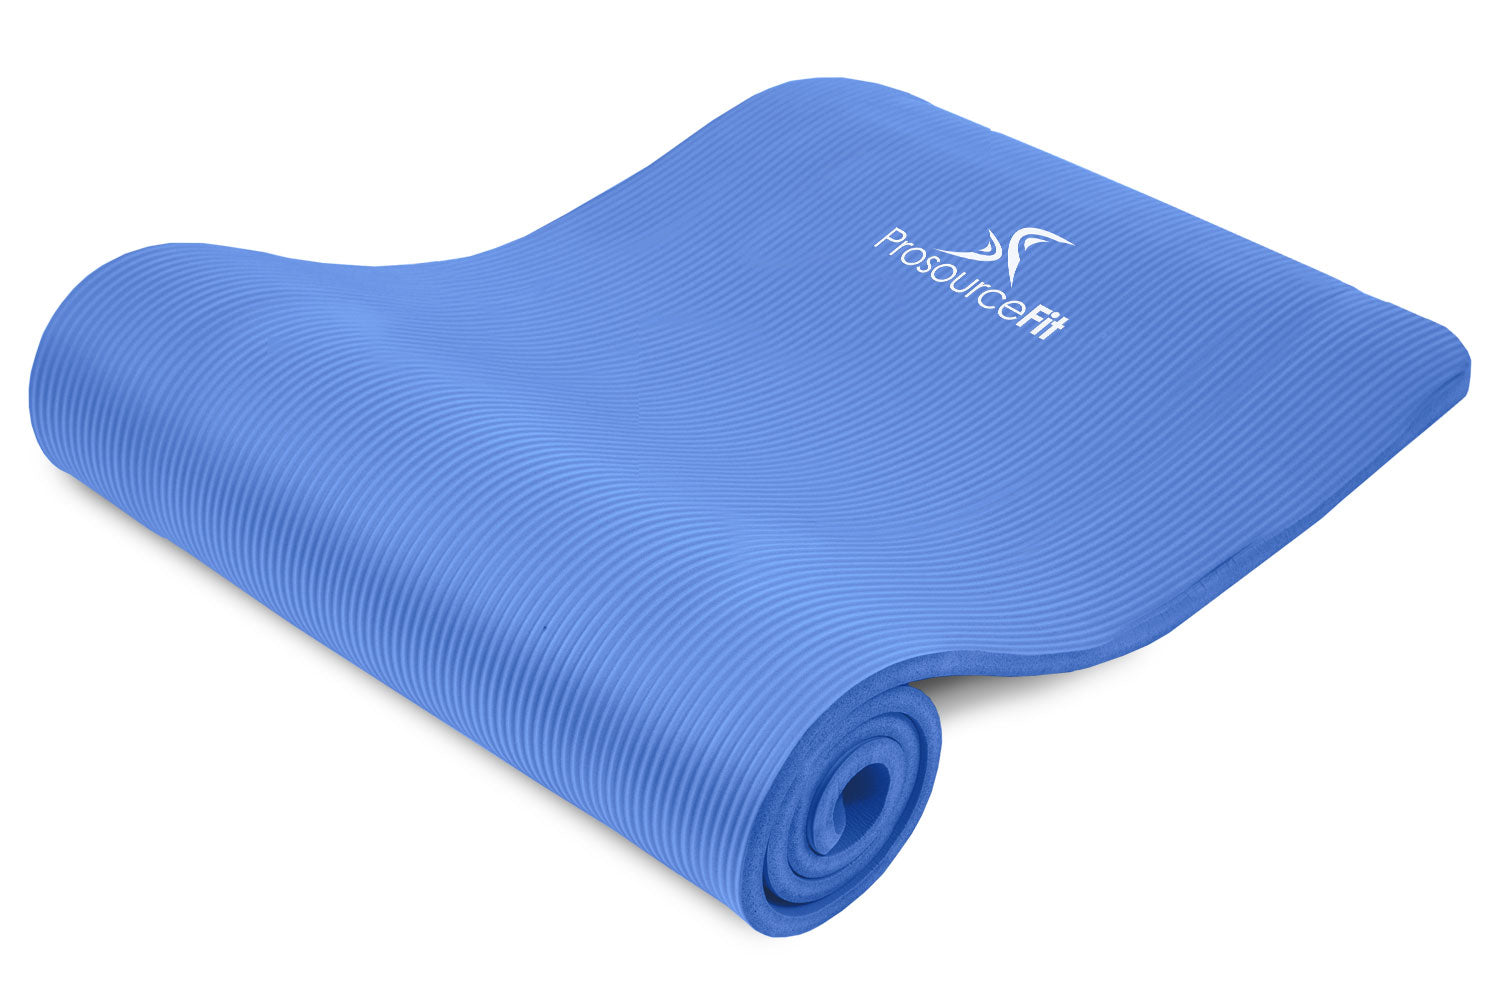 Blue Extra Thick Yoga and Pilates Mat 1/2 inch